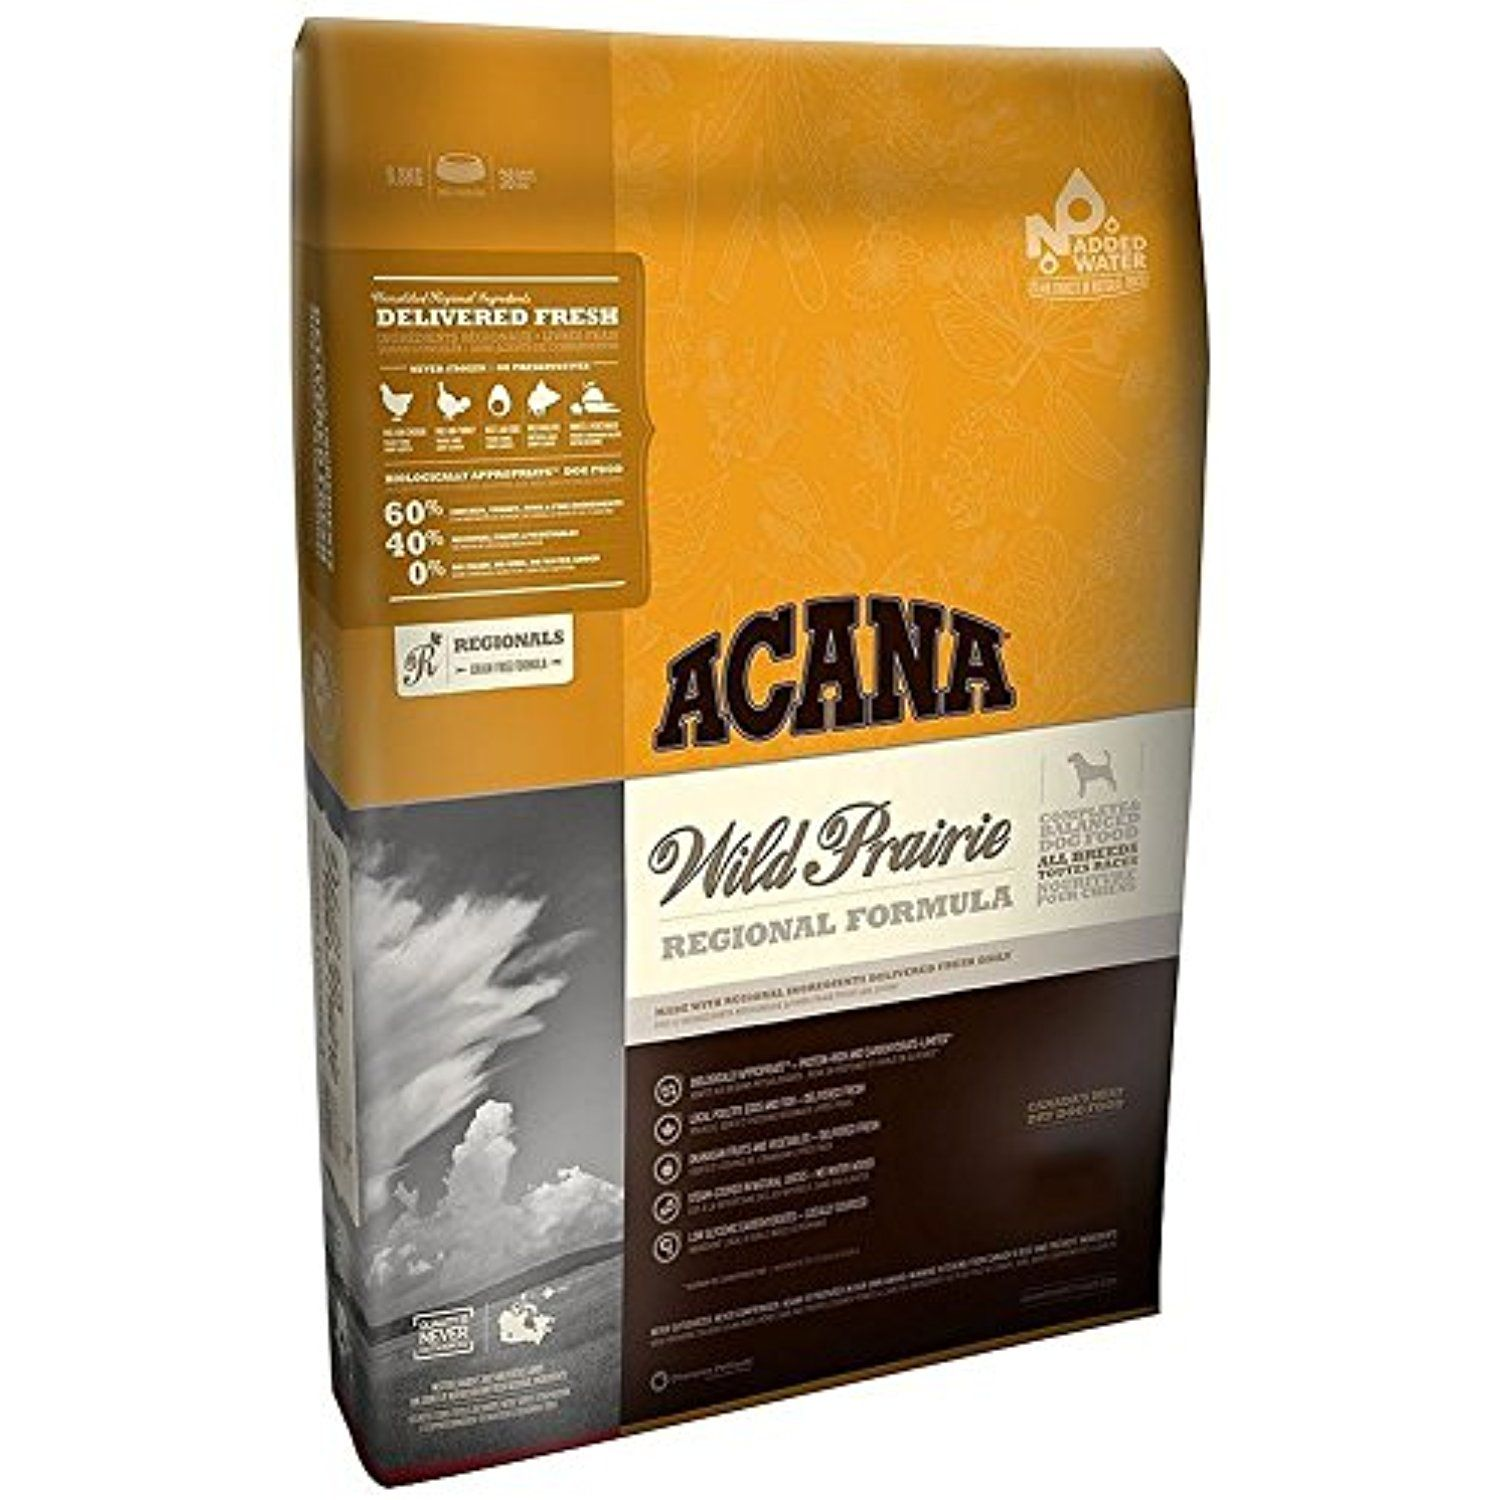 Acana Wild Prairie Dry Dog Food (New Formula) 5 LB You